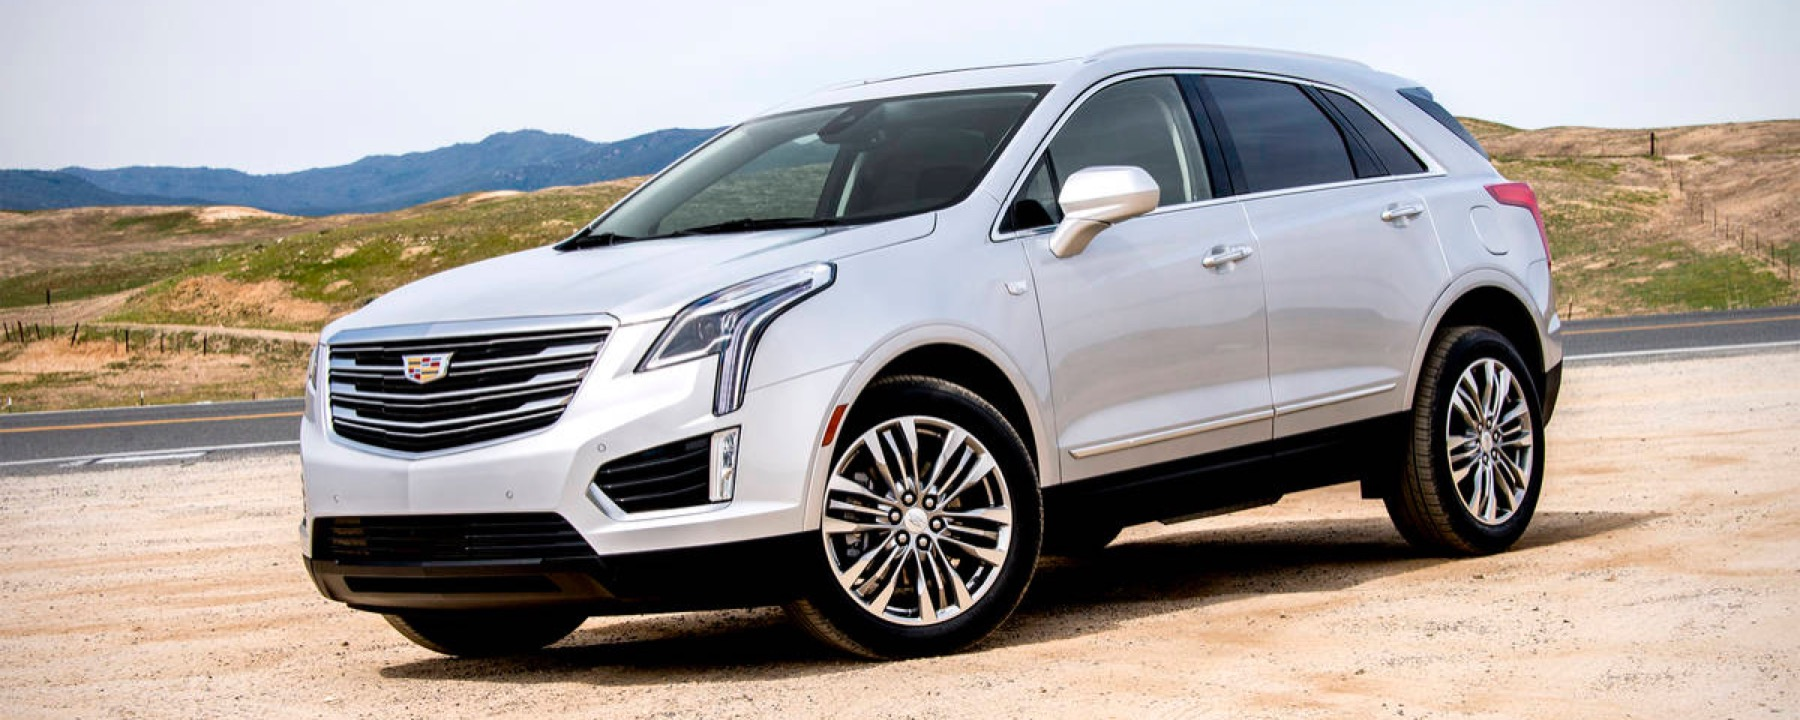 The perfect cadillac for college students the xt5 baker for Cadillac motor car company